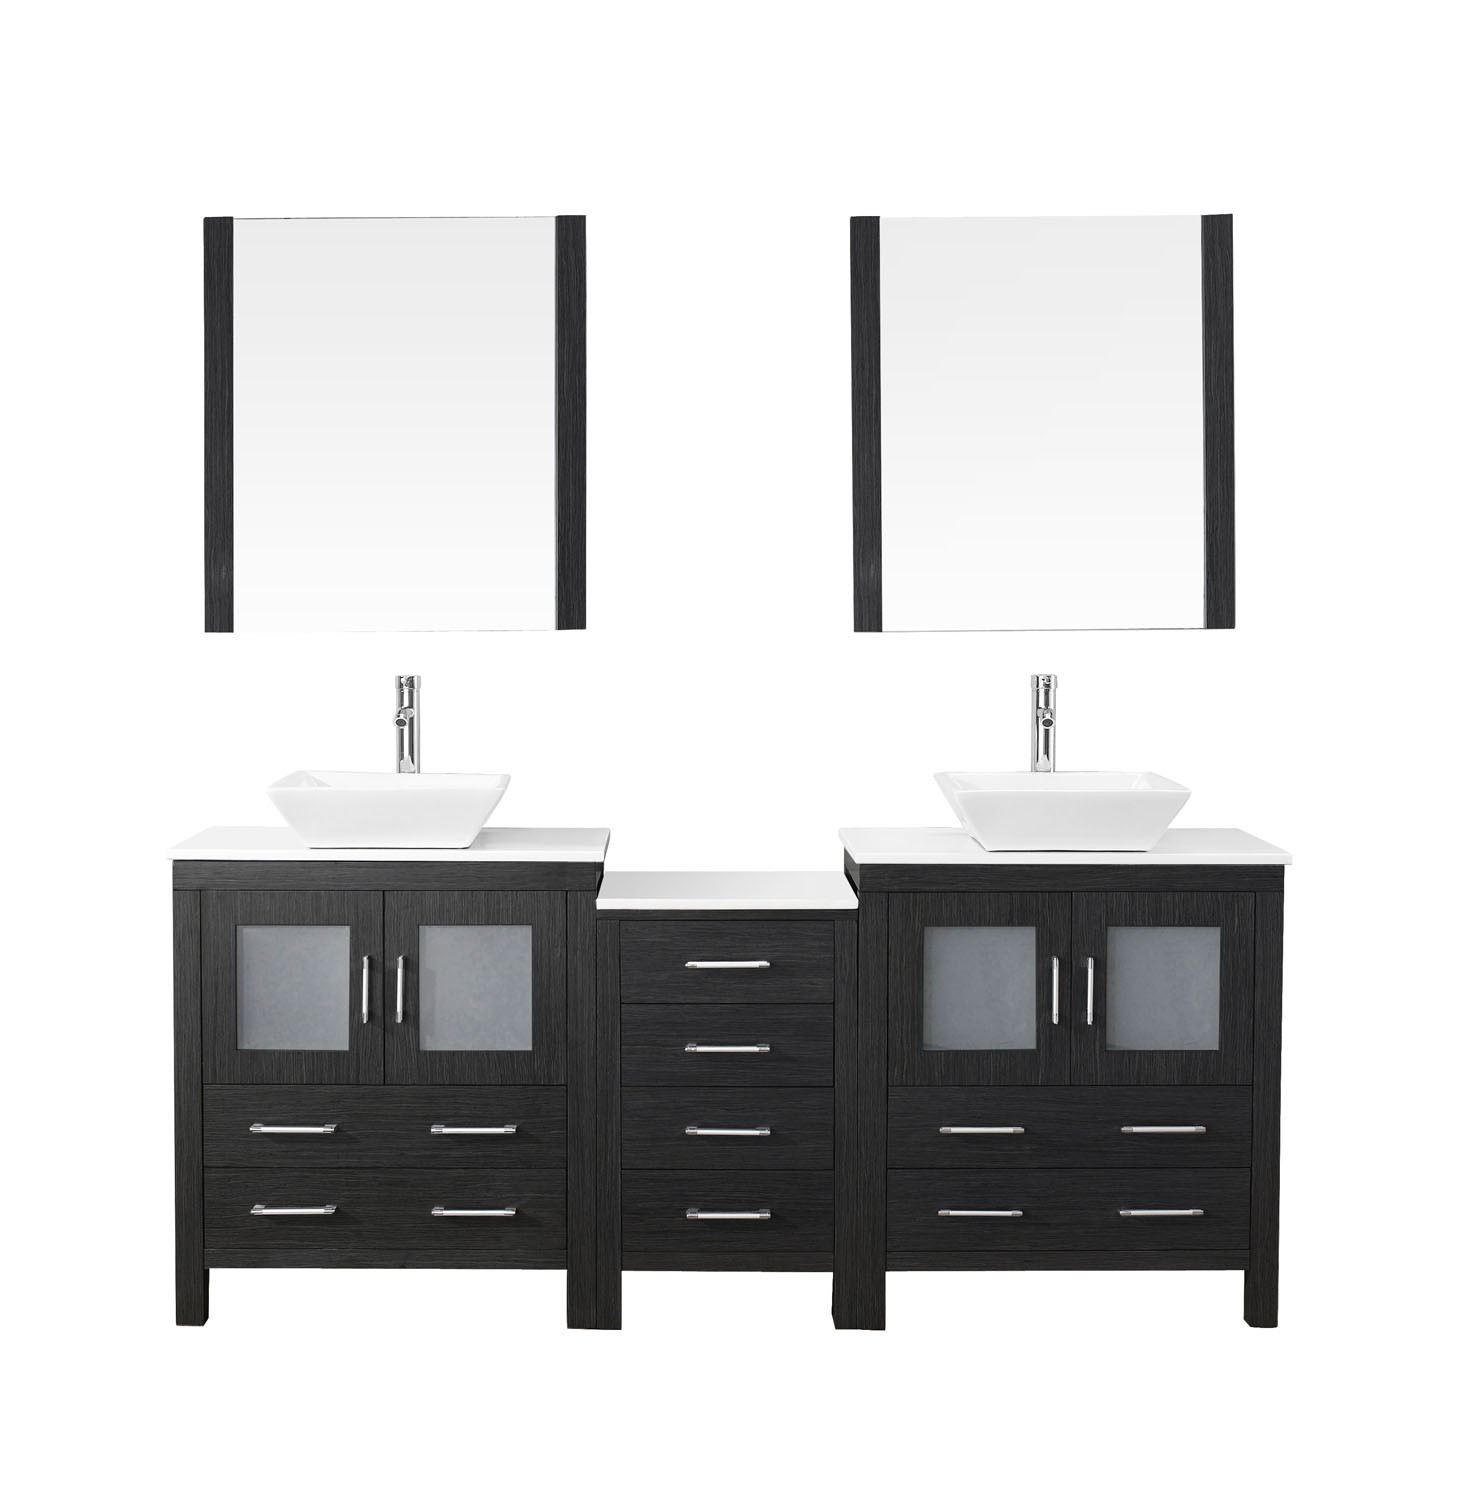 Virtu KD-70078-S-ZG-001 Dior 78 Inch Double Bathroom Vanity Set In Zebra Grey